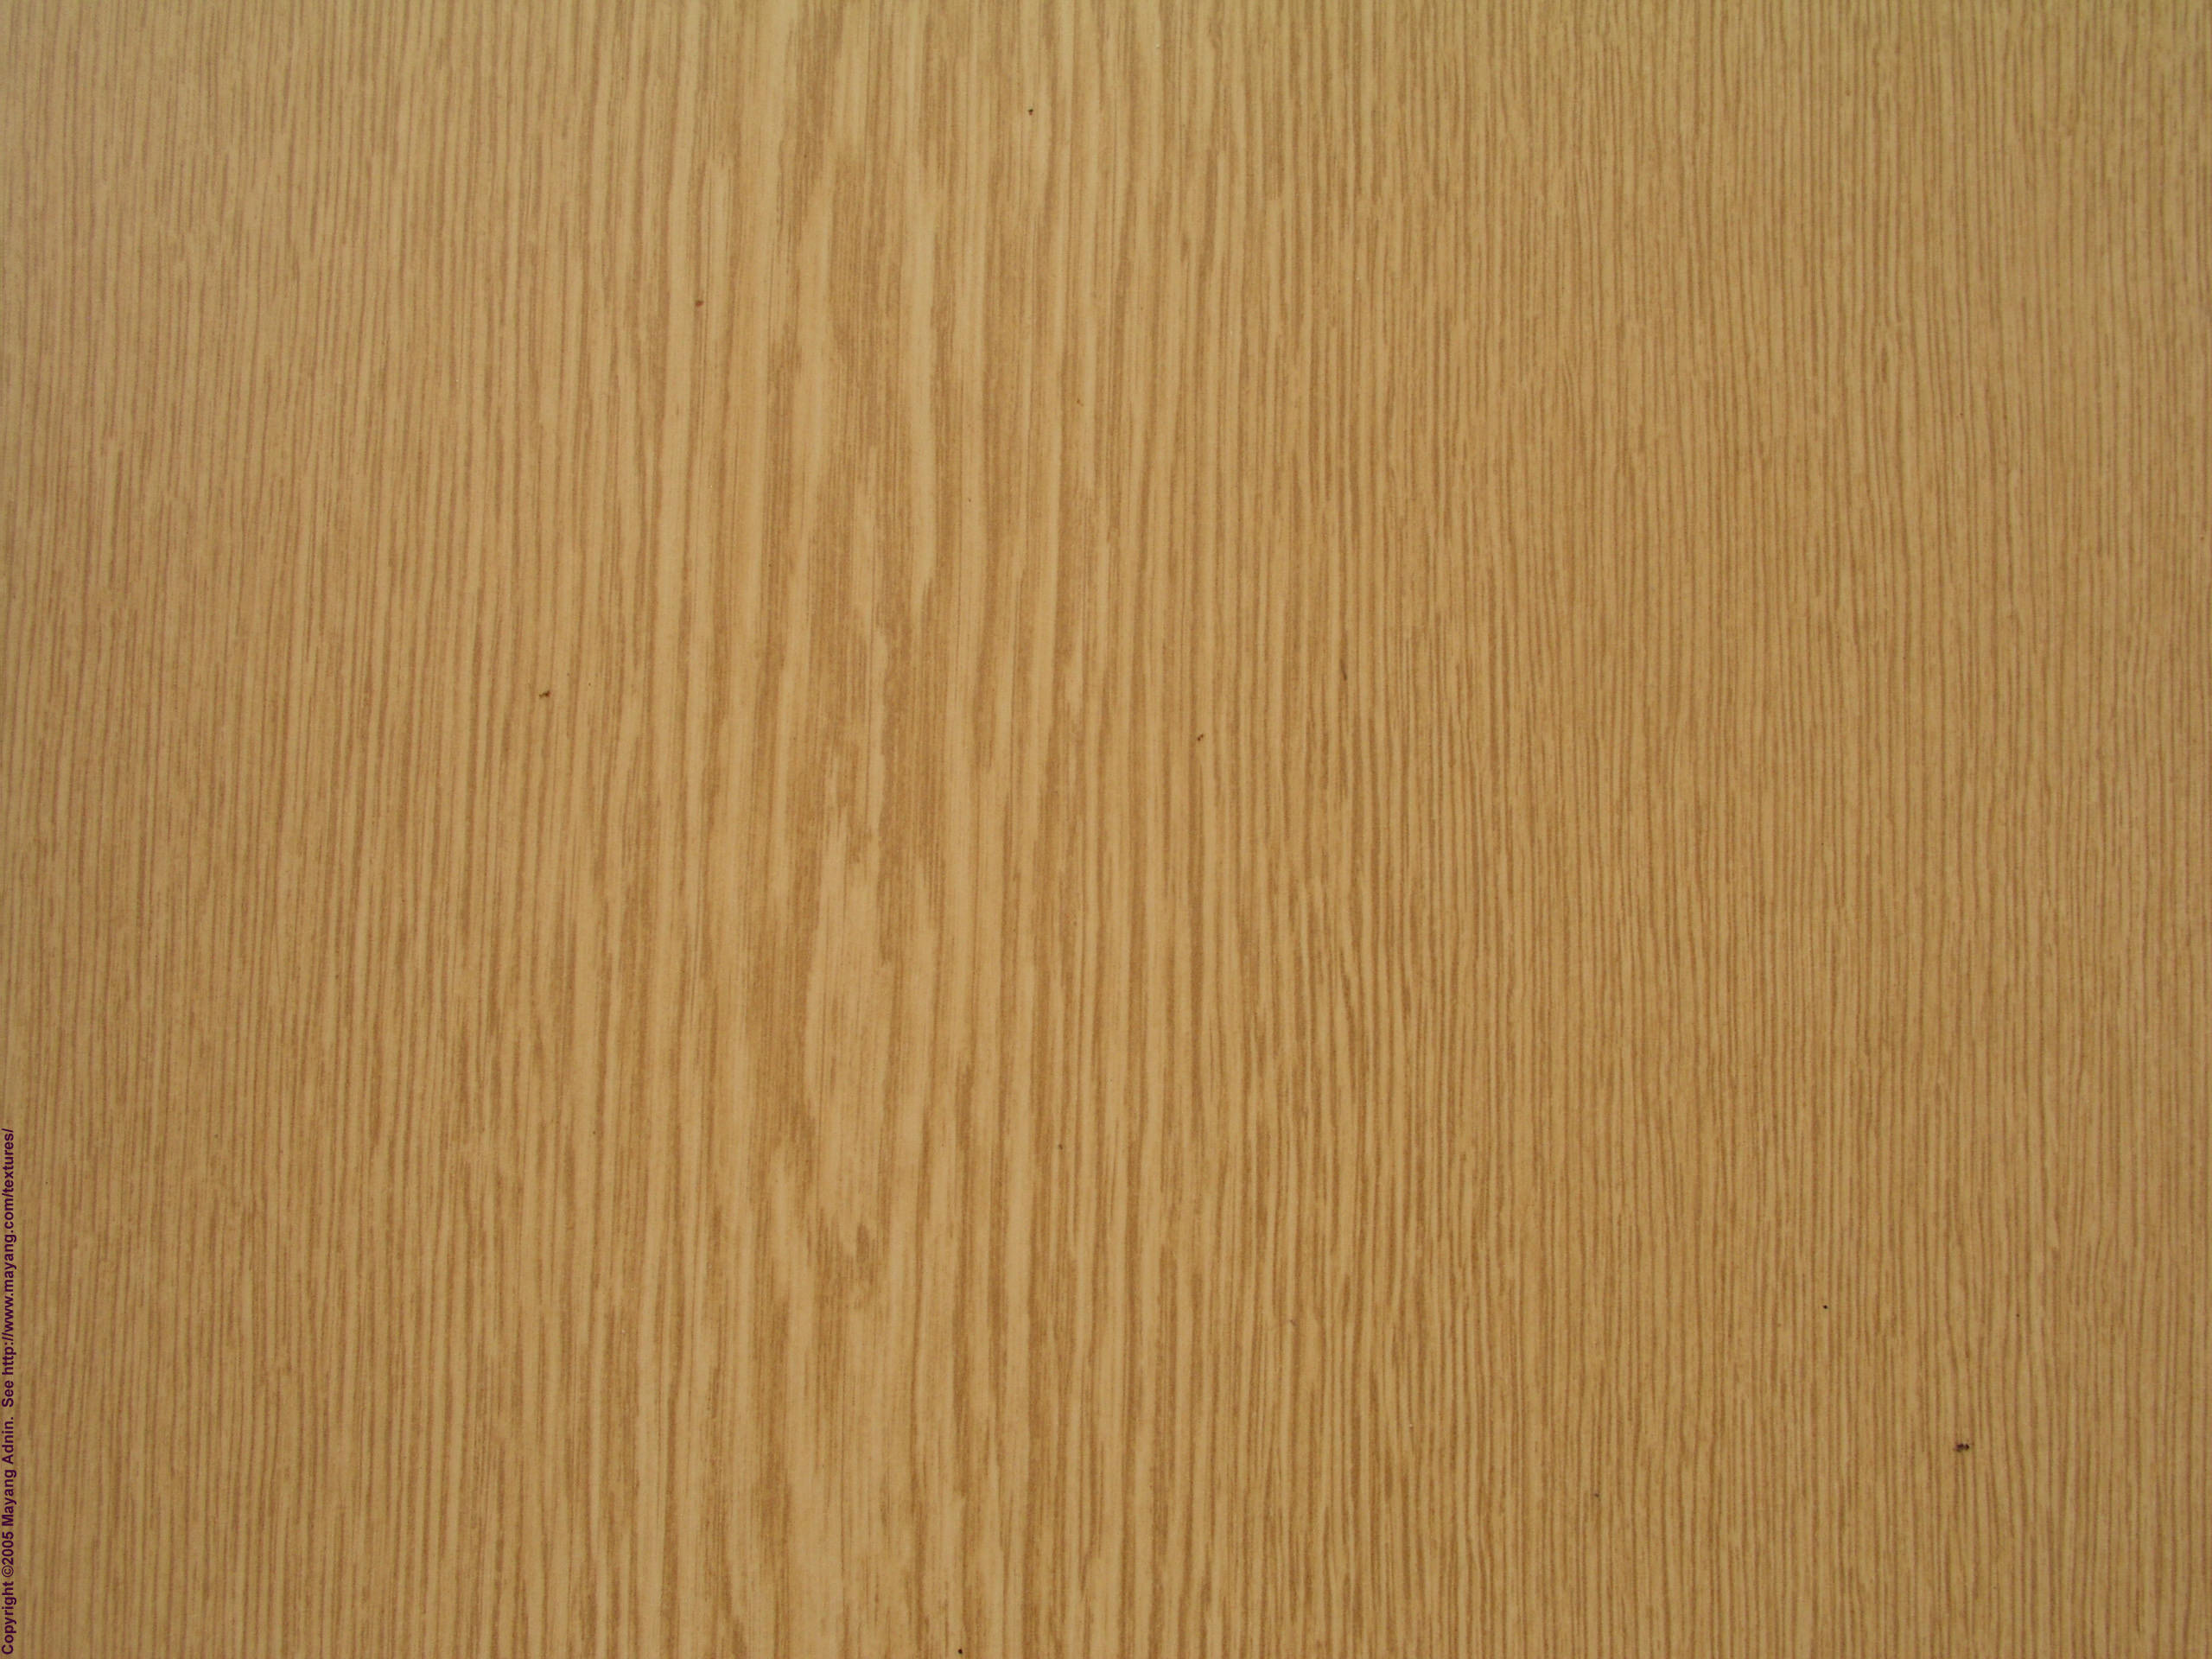 artificial wood texture